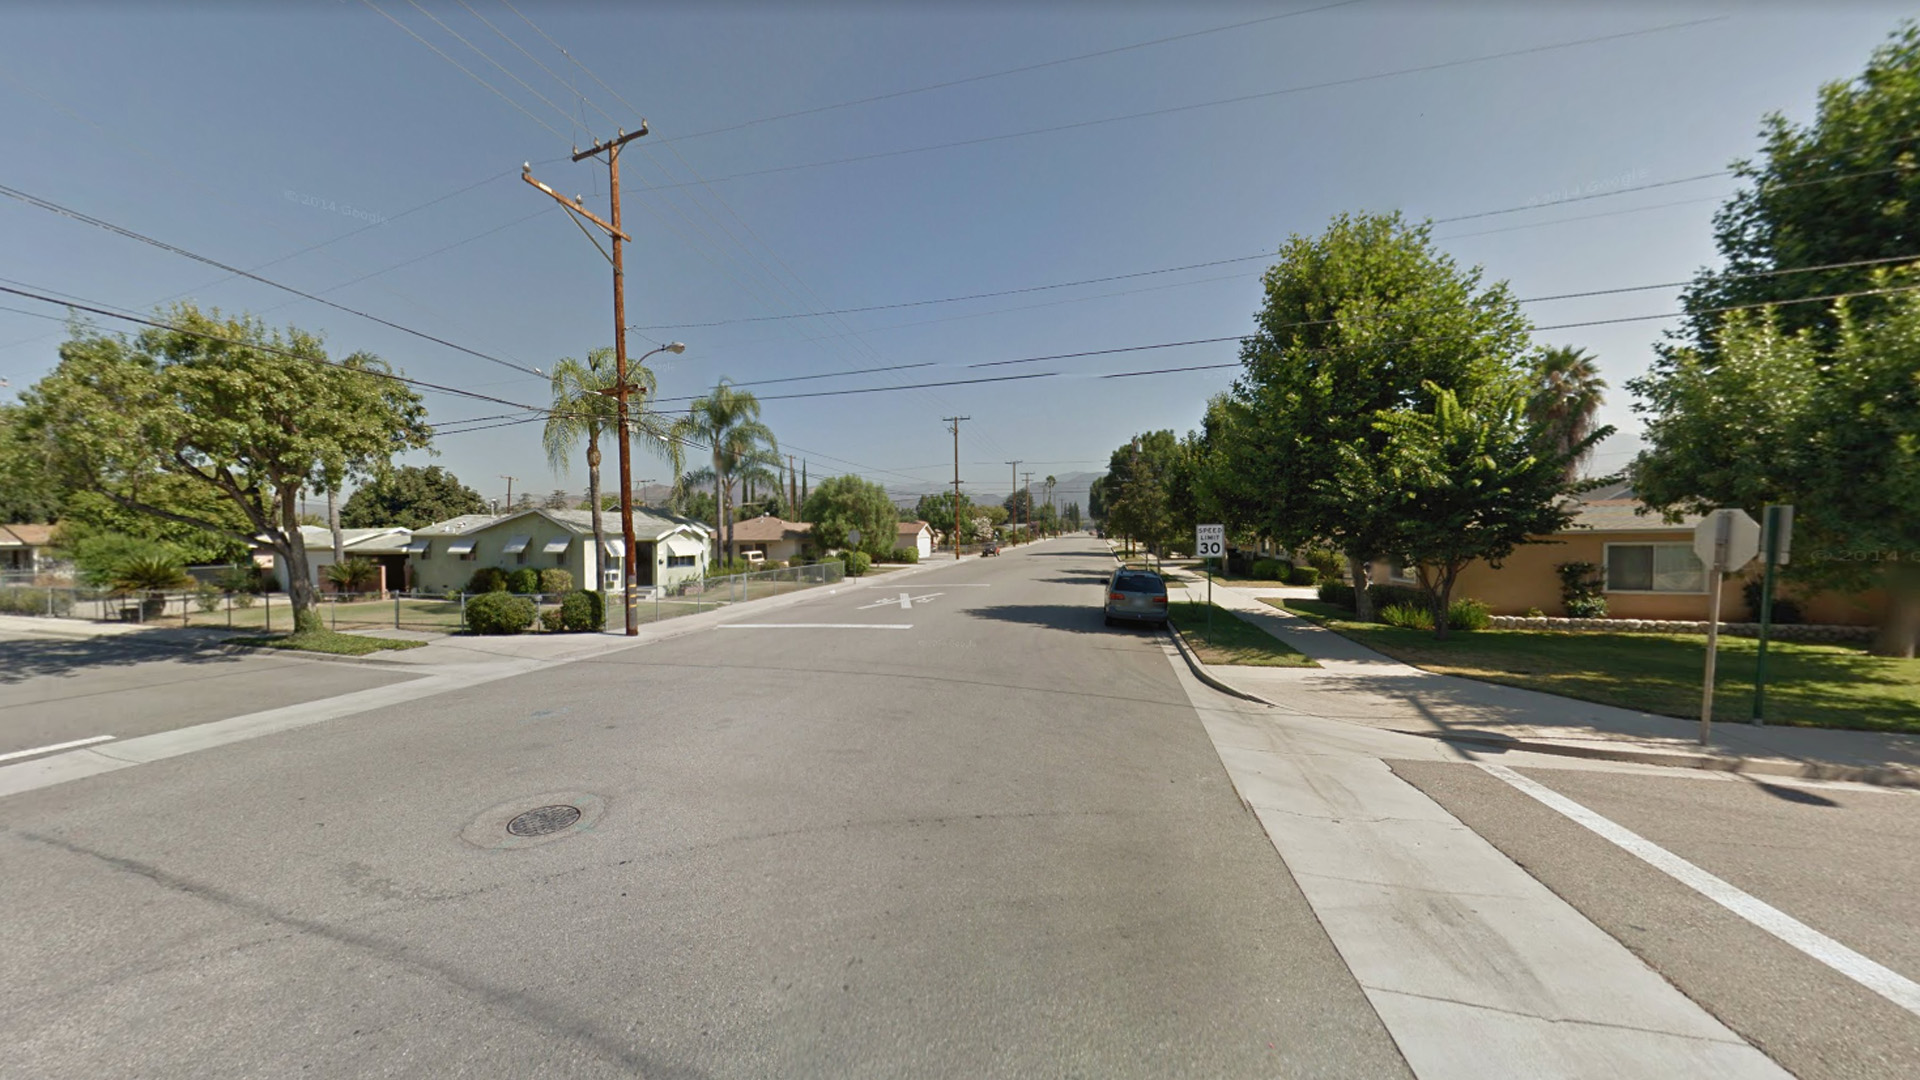 The intersection of A Street and 1st Street in La Verne is seen in an image from Google Maps.